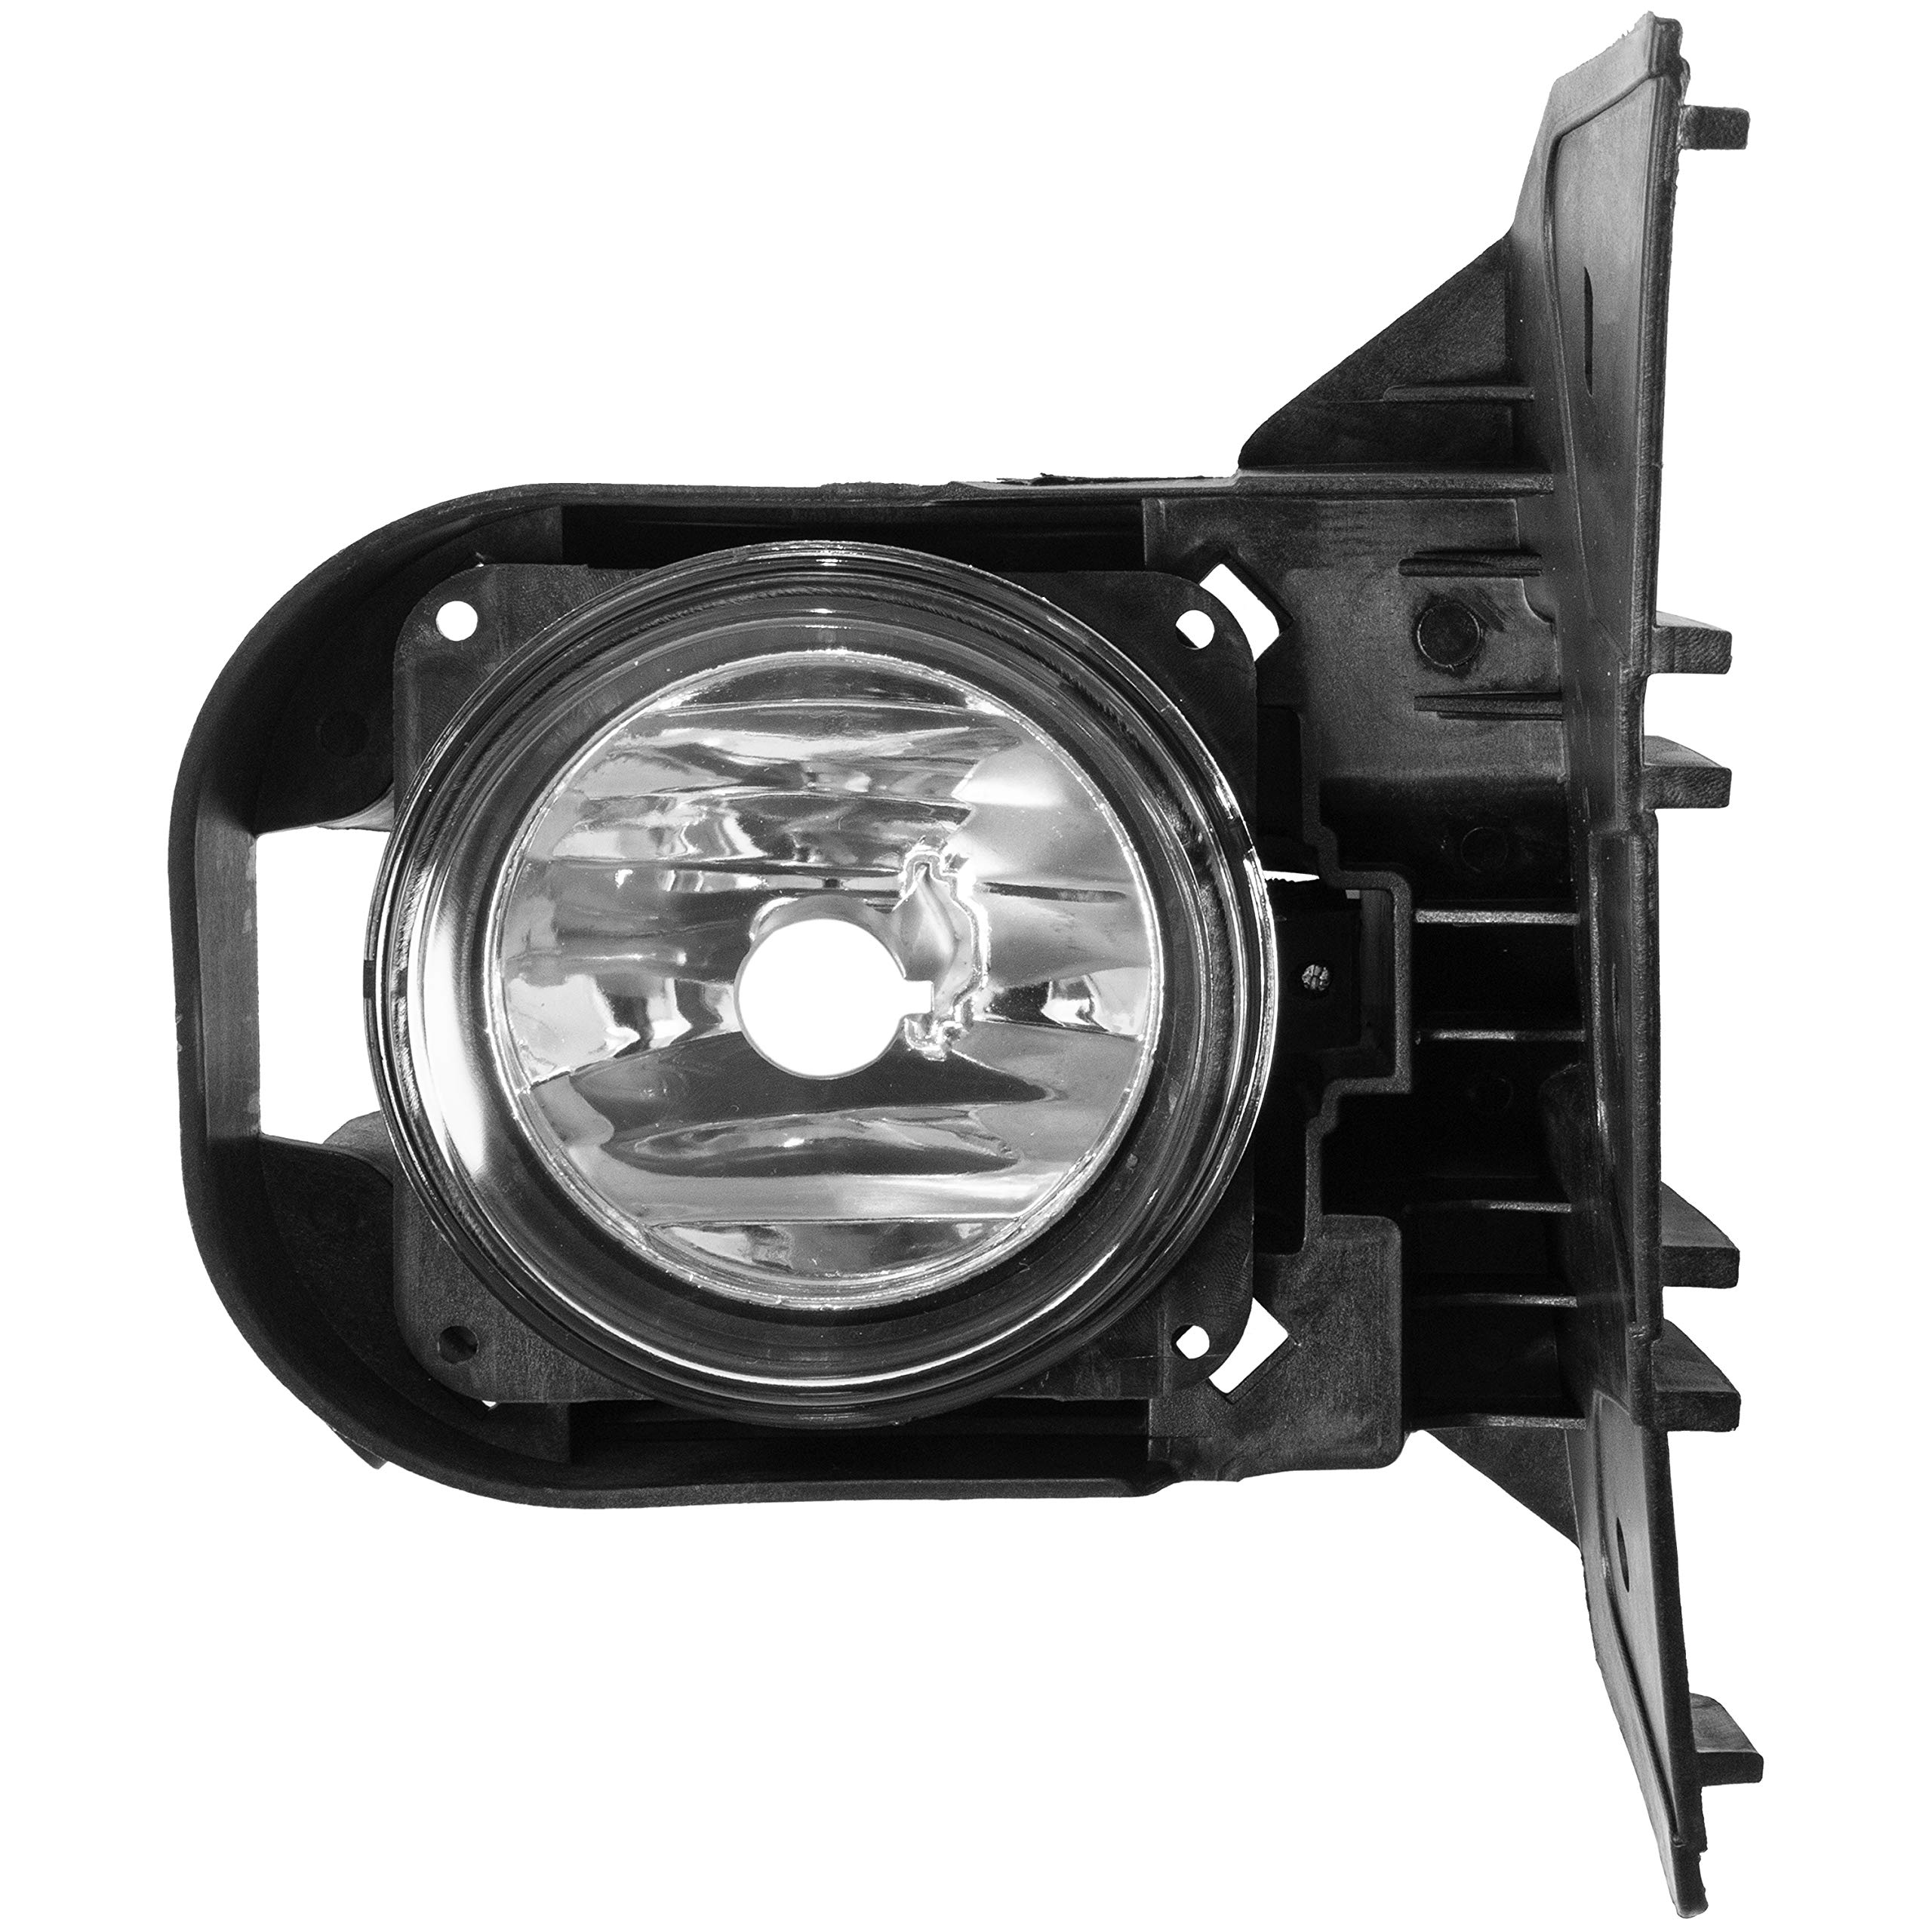 ECOTRIC New Left Front Fog Light Lamp With Bezel & Bulb & Hardware Compatible with 2000-2004 Ford F-150 Harley Davidson (Driver Side)